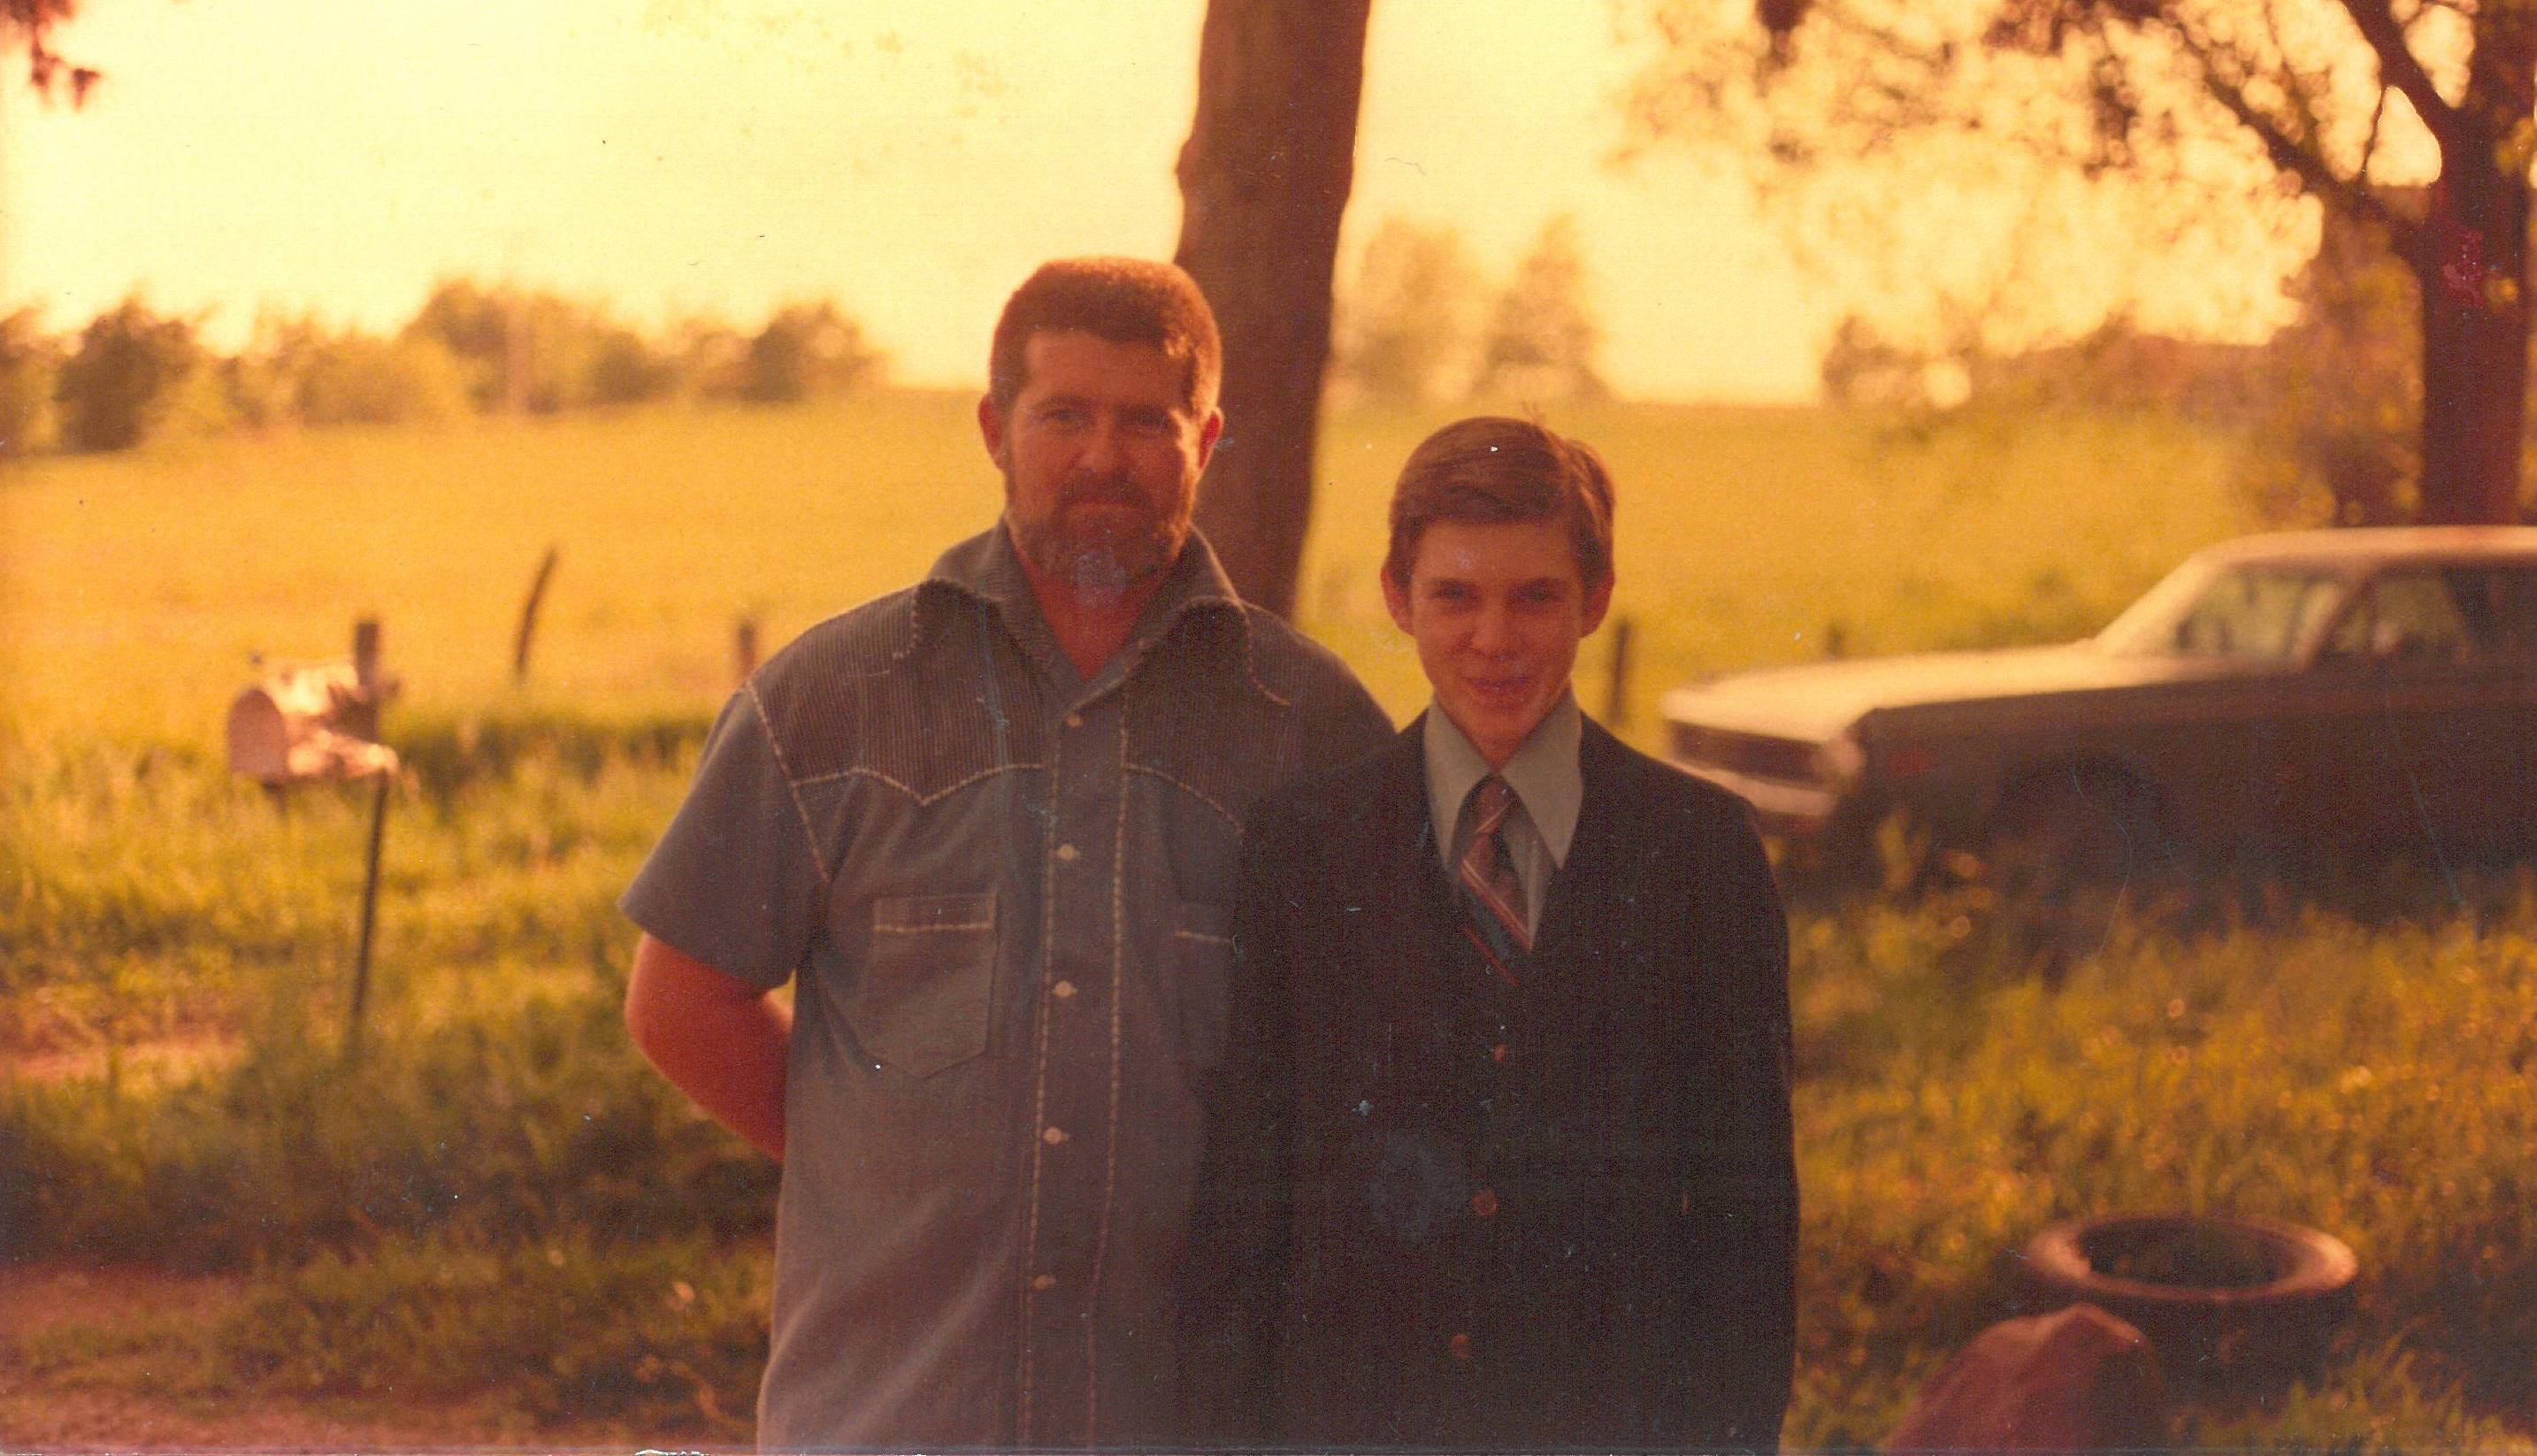 Michael Ryan And Son Dennis Stand In the Sunlight